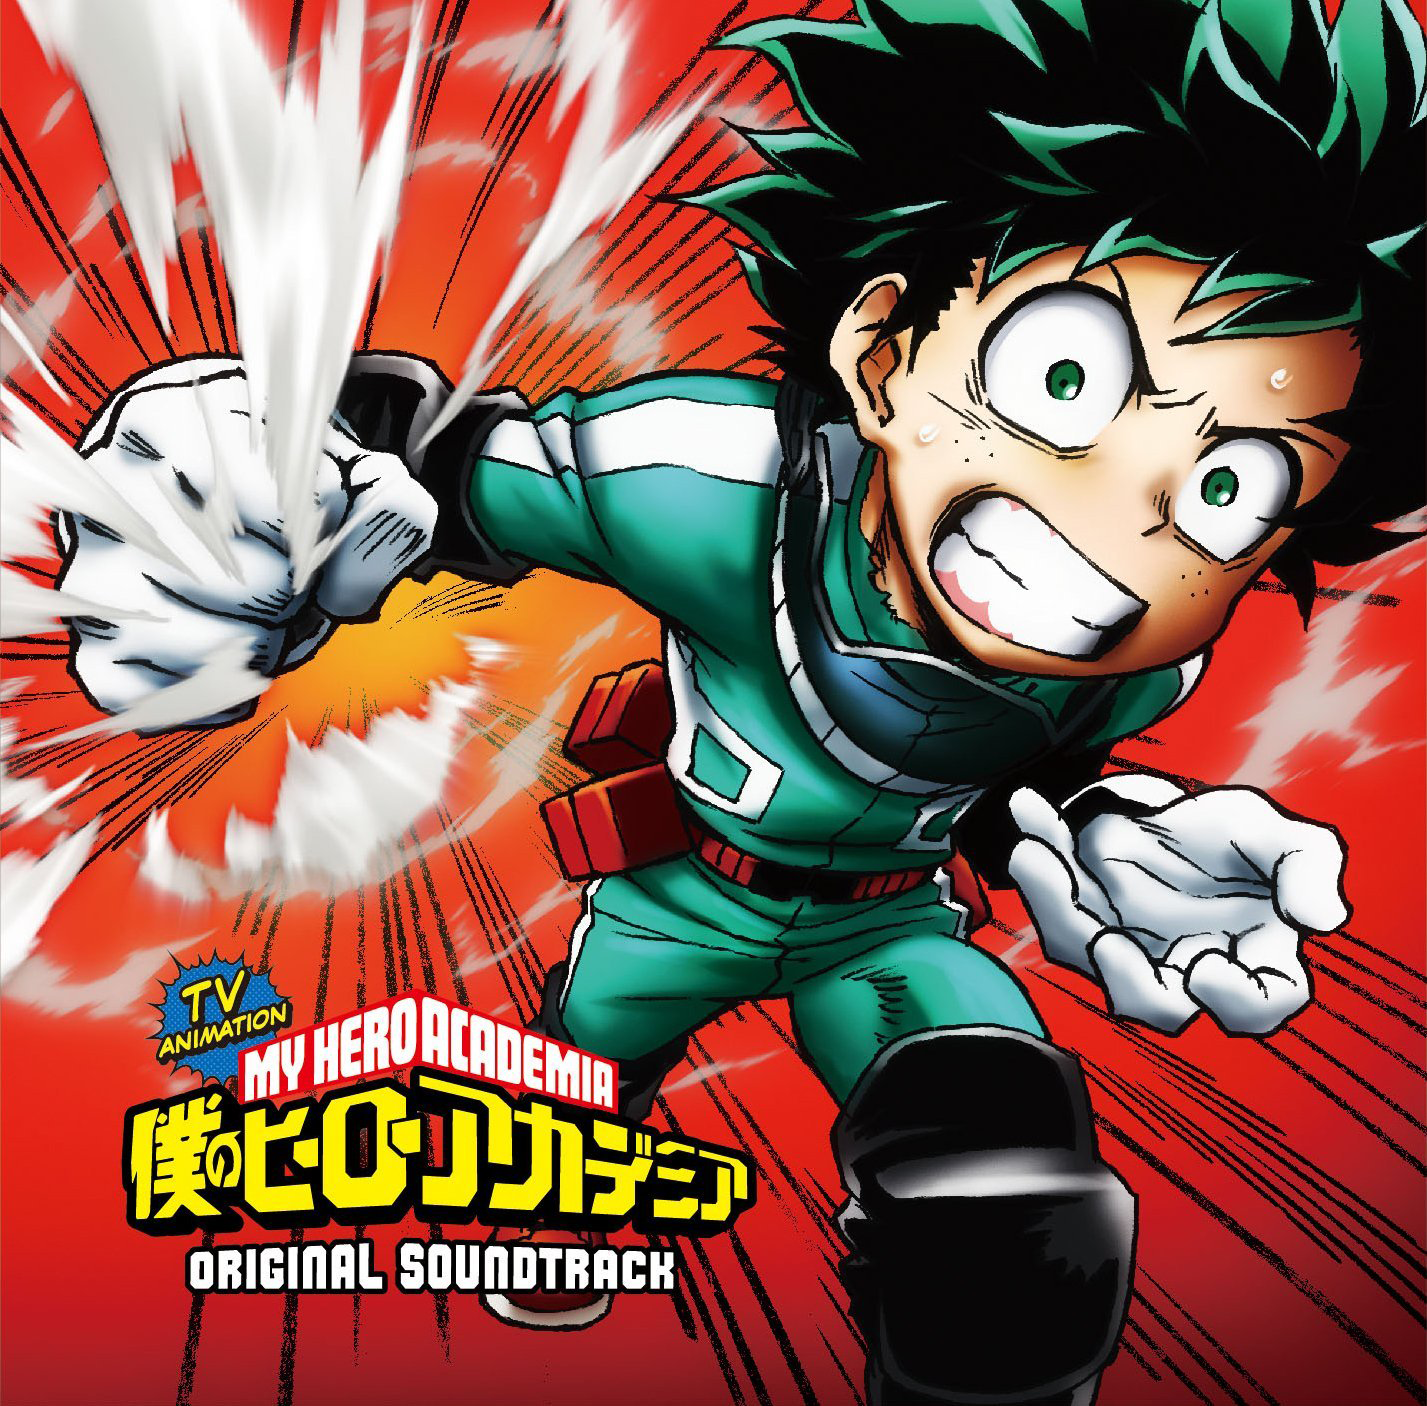 HERO A (My Hero Academia 1st Official Soundtrack)